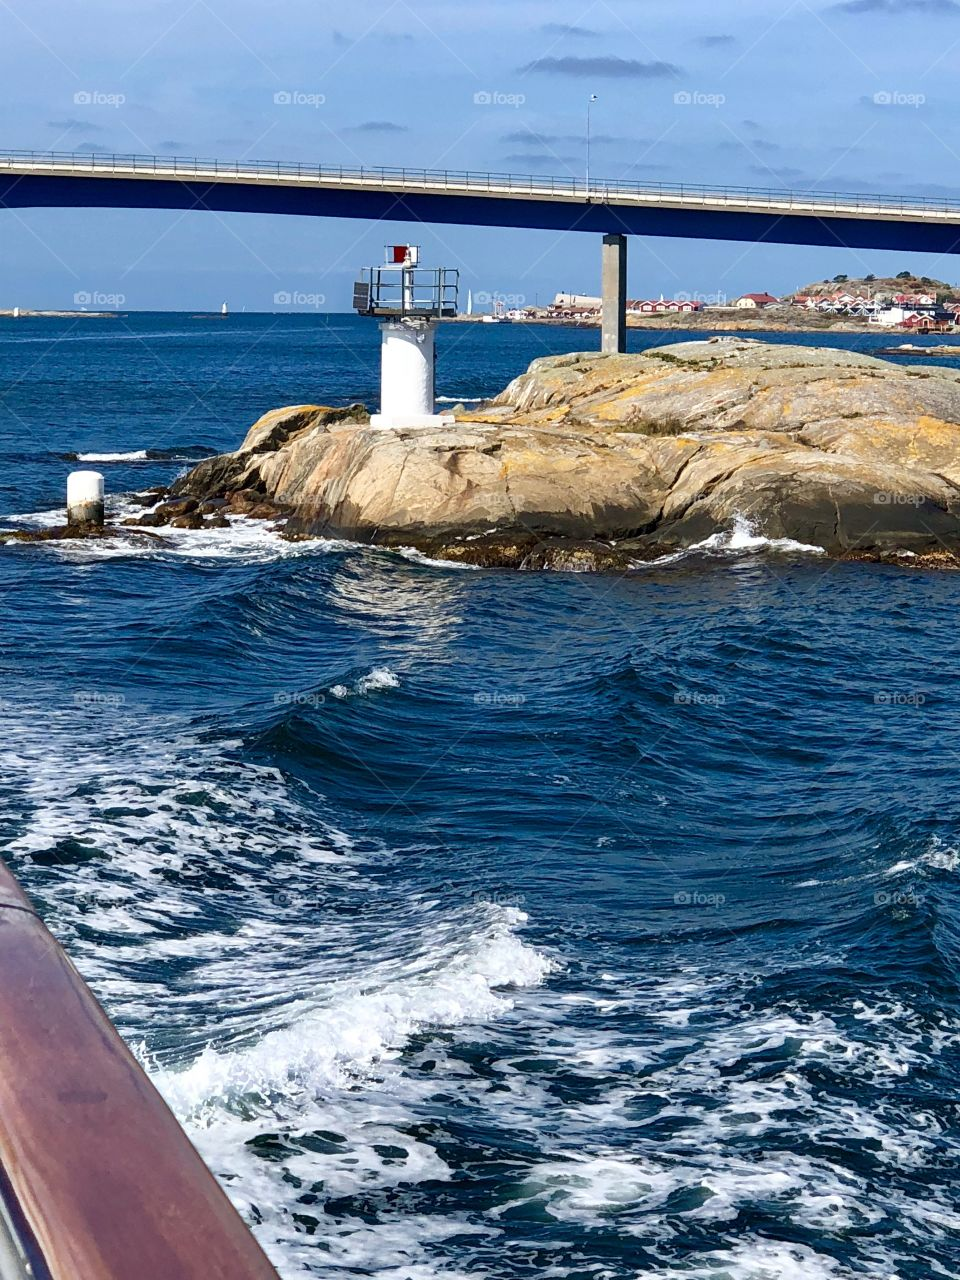 Passing under a bridge and a lighthouse